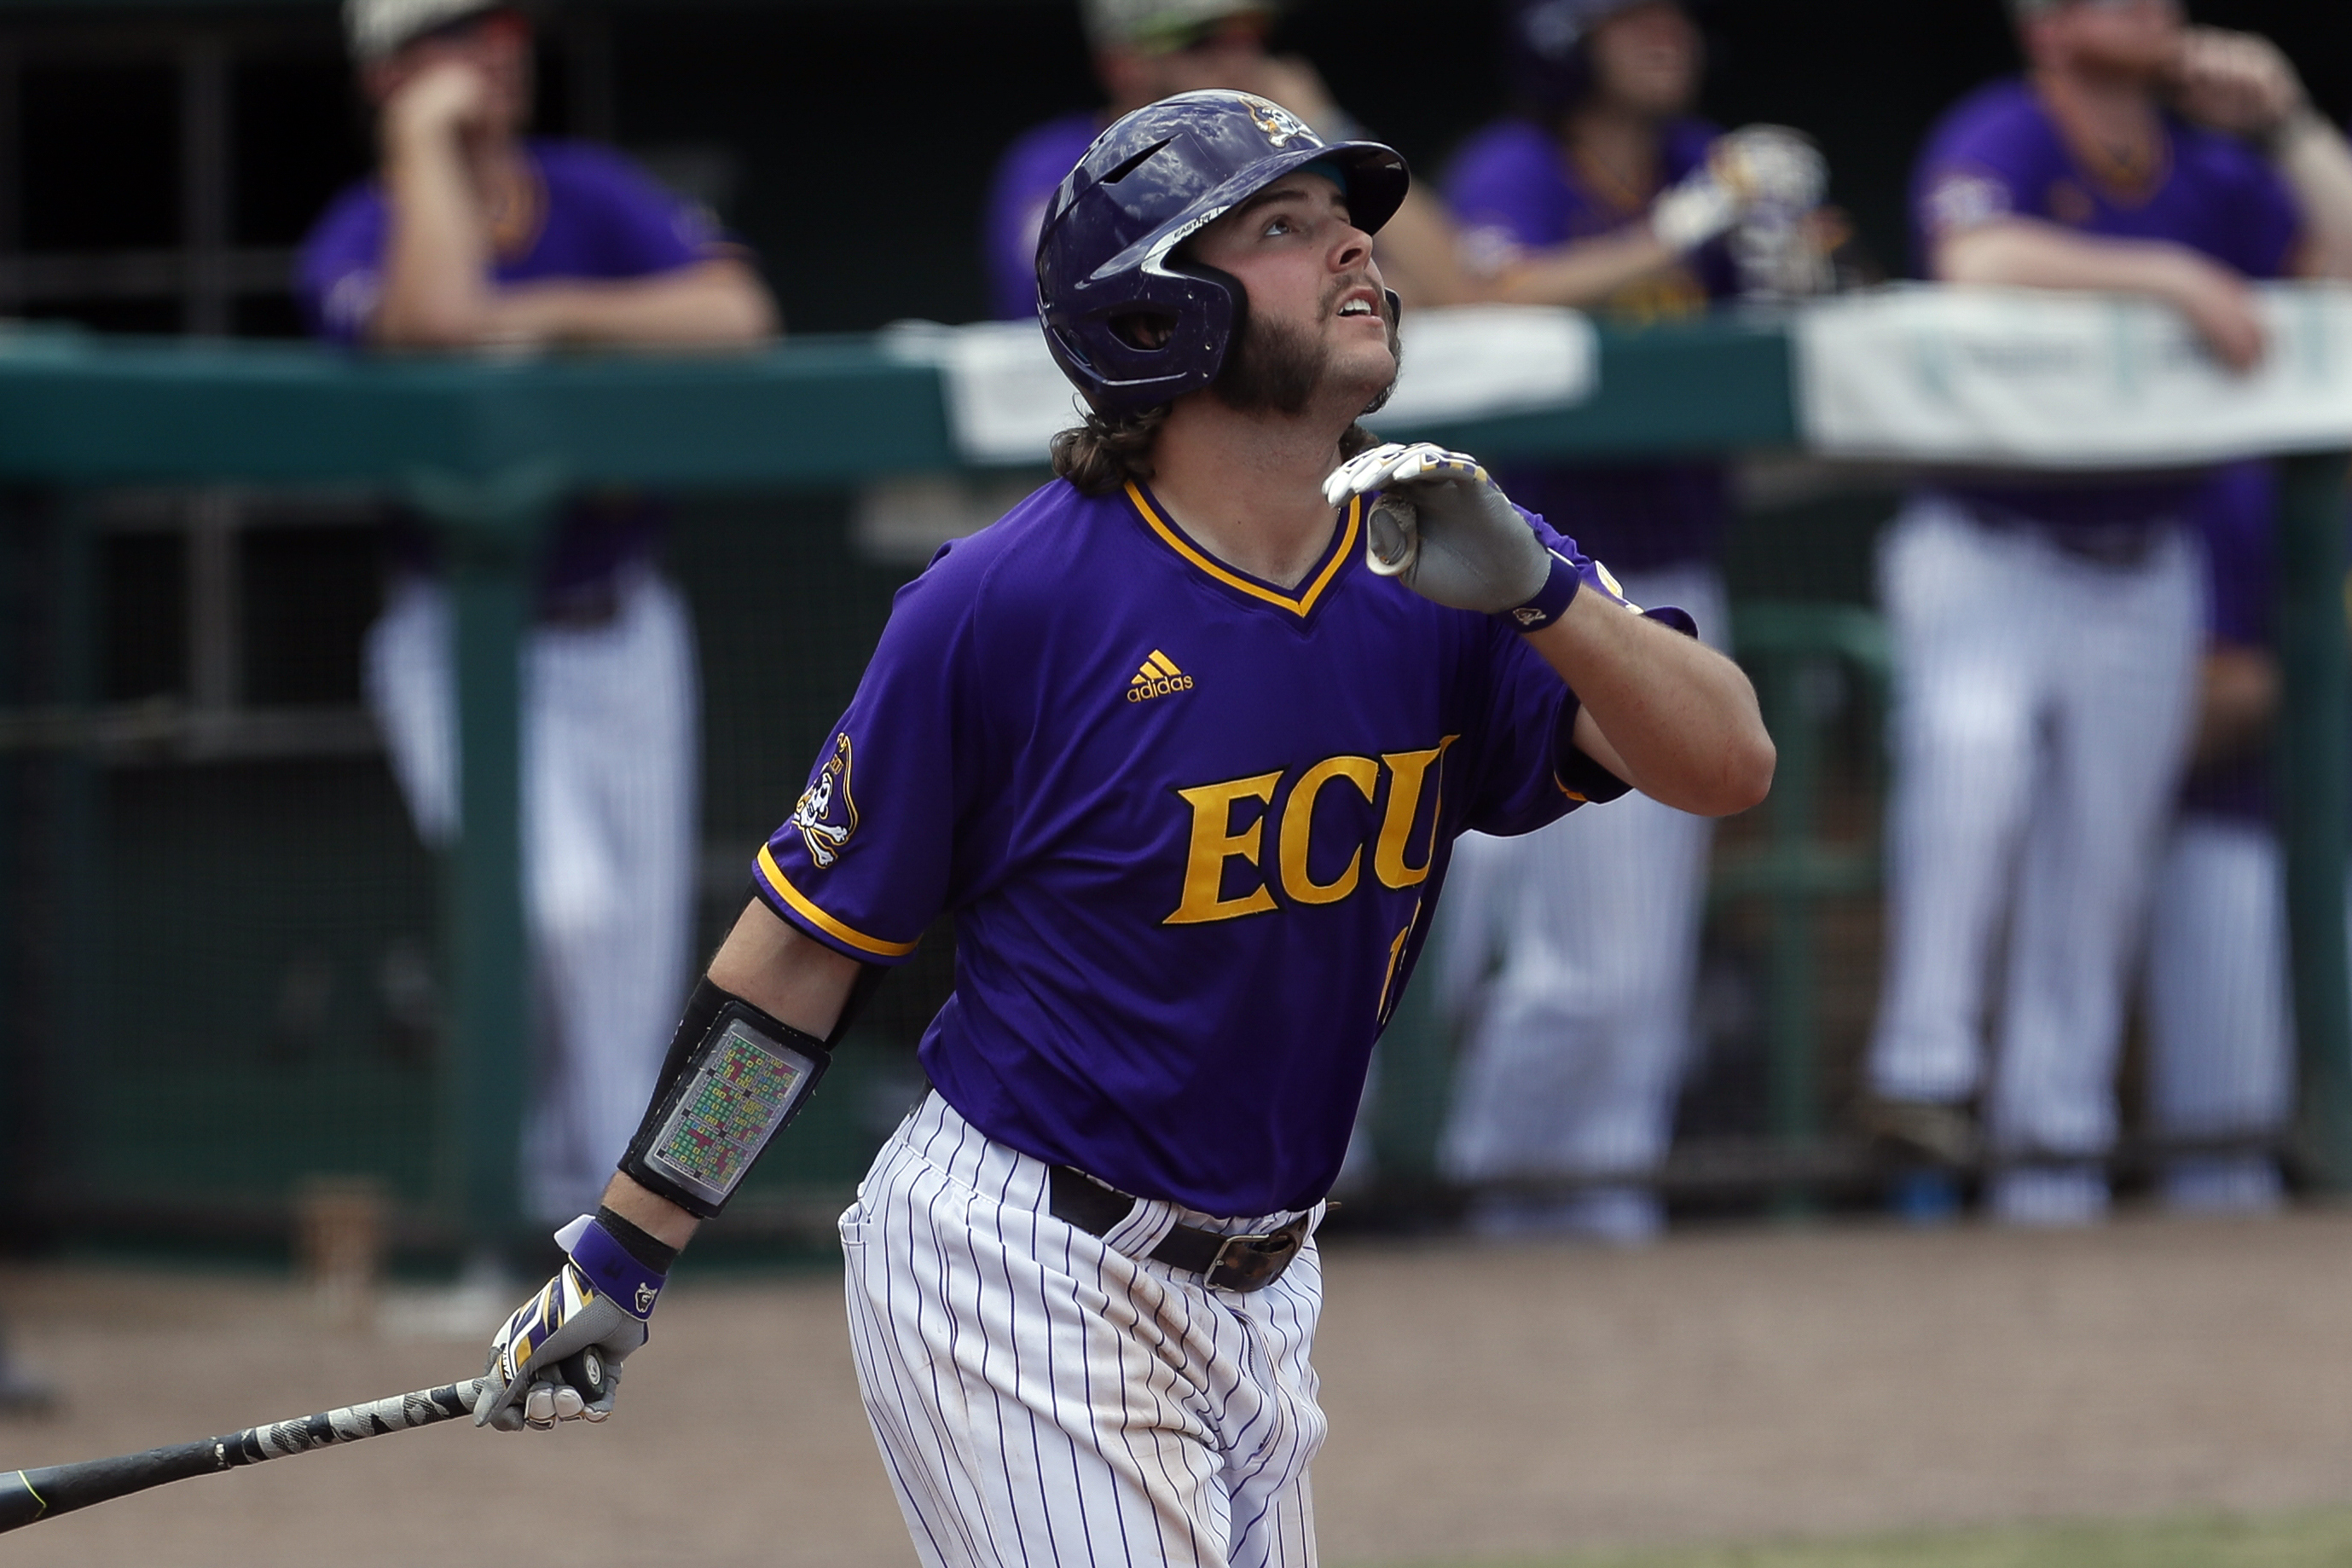 Ten players to watch in college baseball in 2020